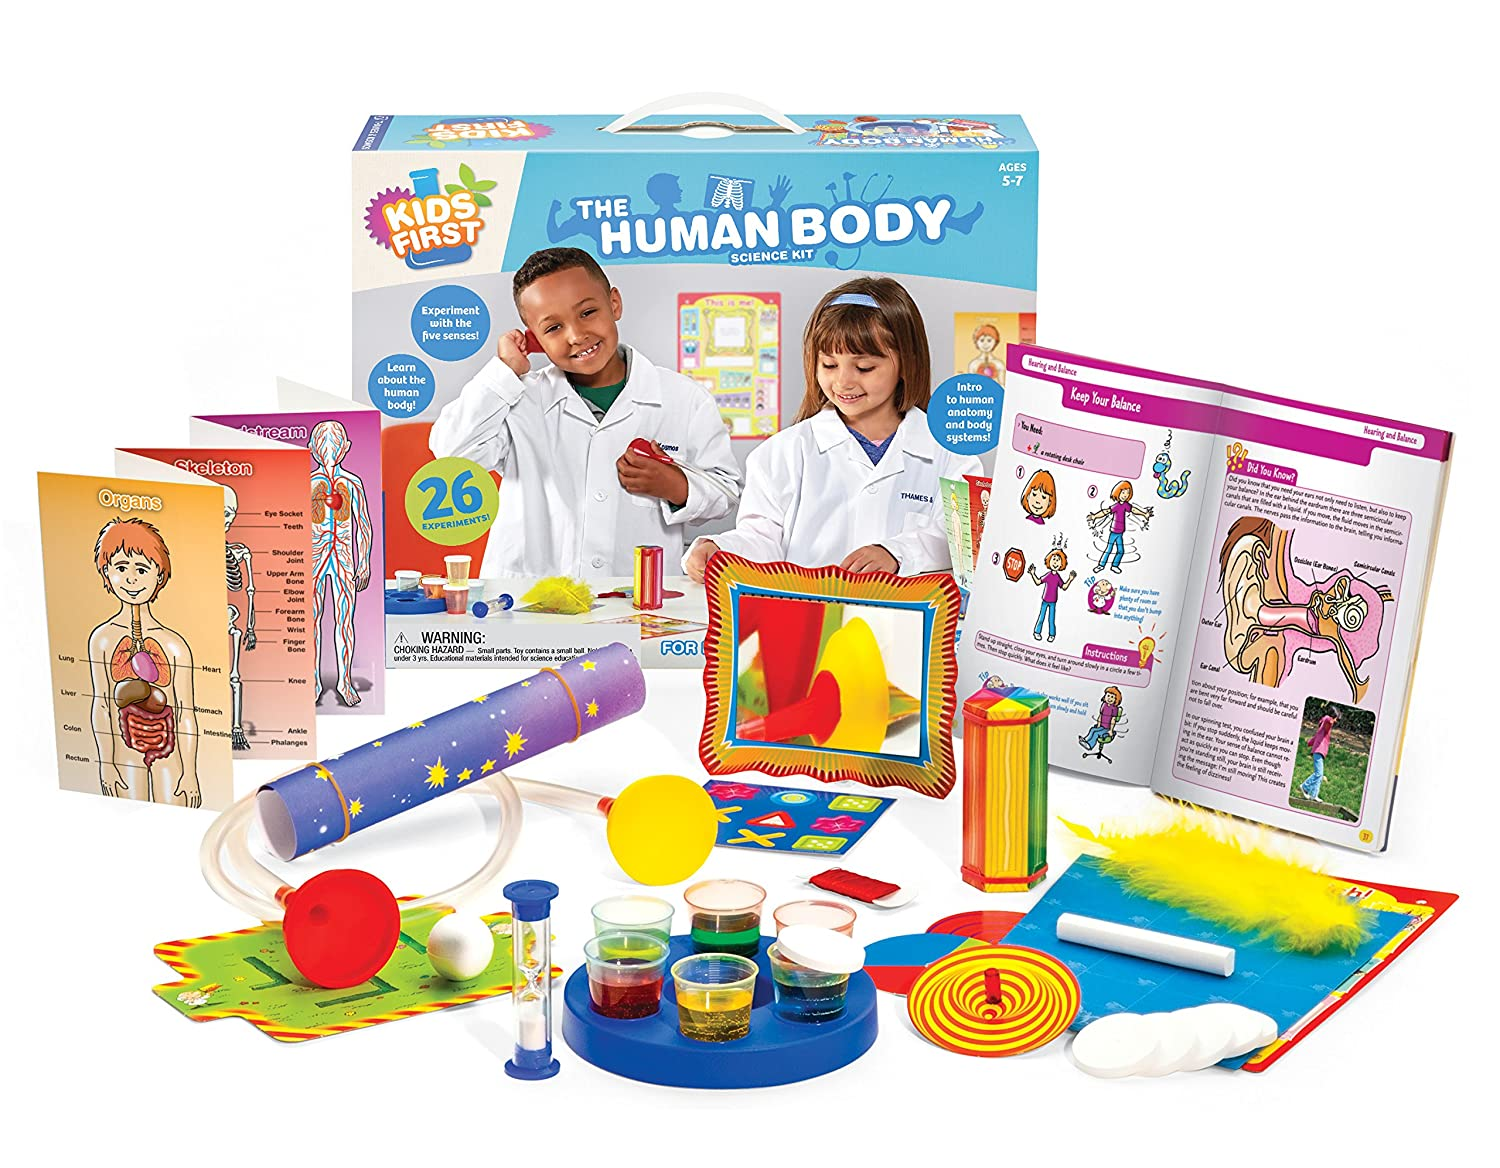 Amazon.com: Kids First The Human Body Kit: Toys & Games